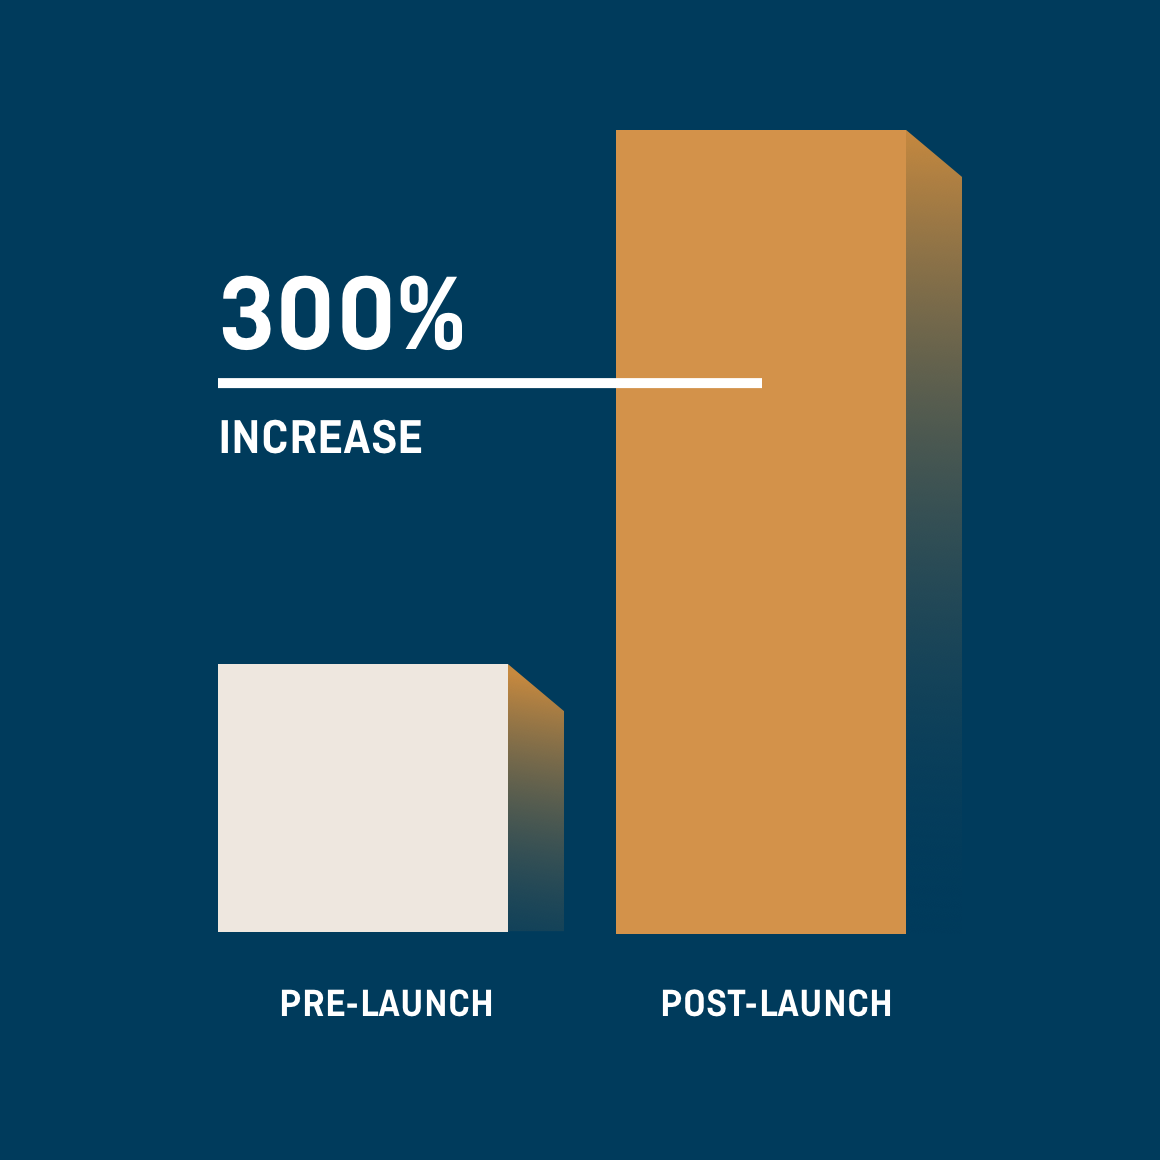 Bar graph depicting 300% increase in traffic to app store post-launch